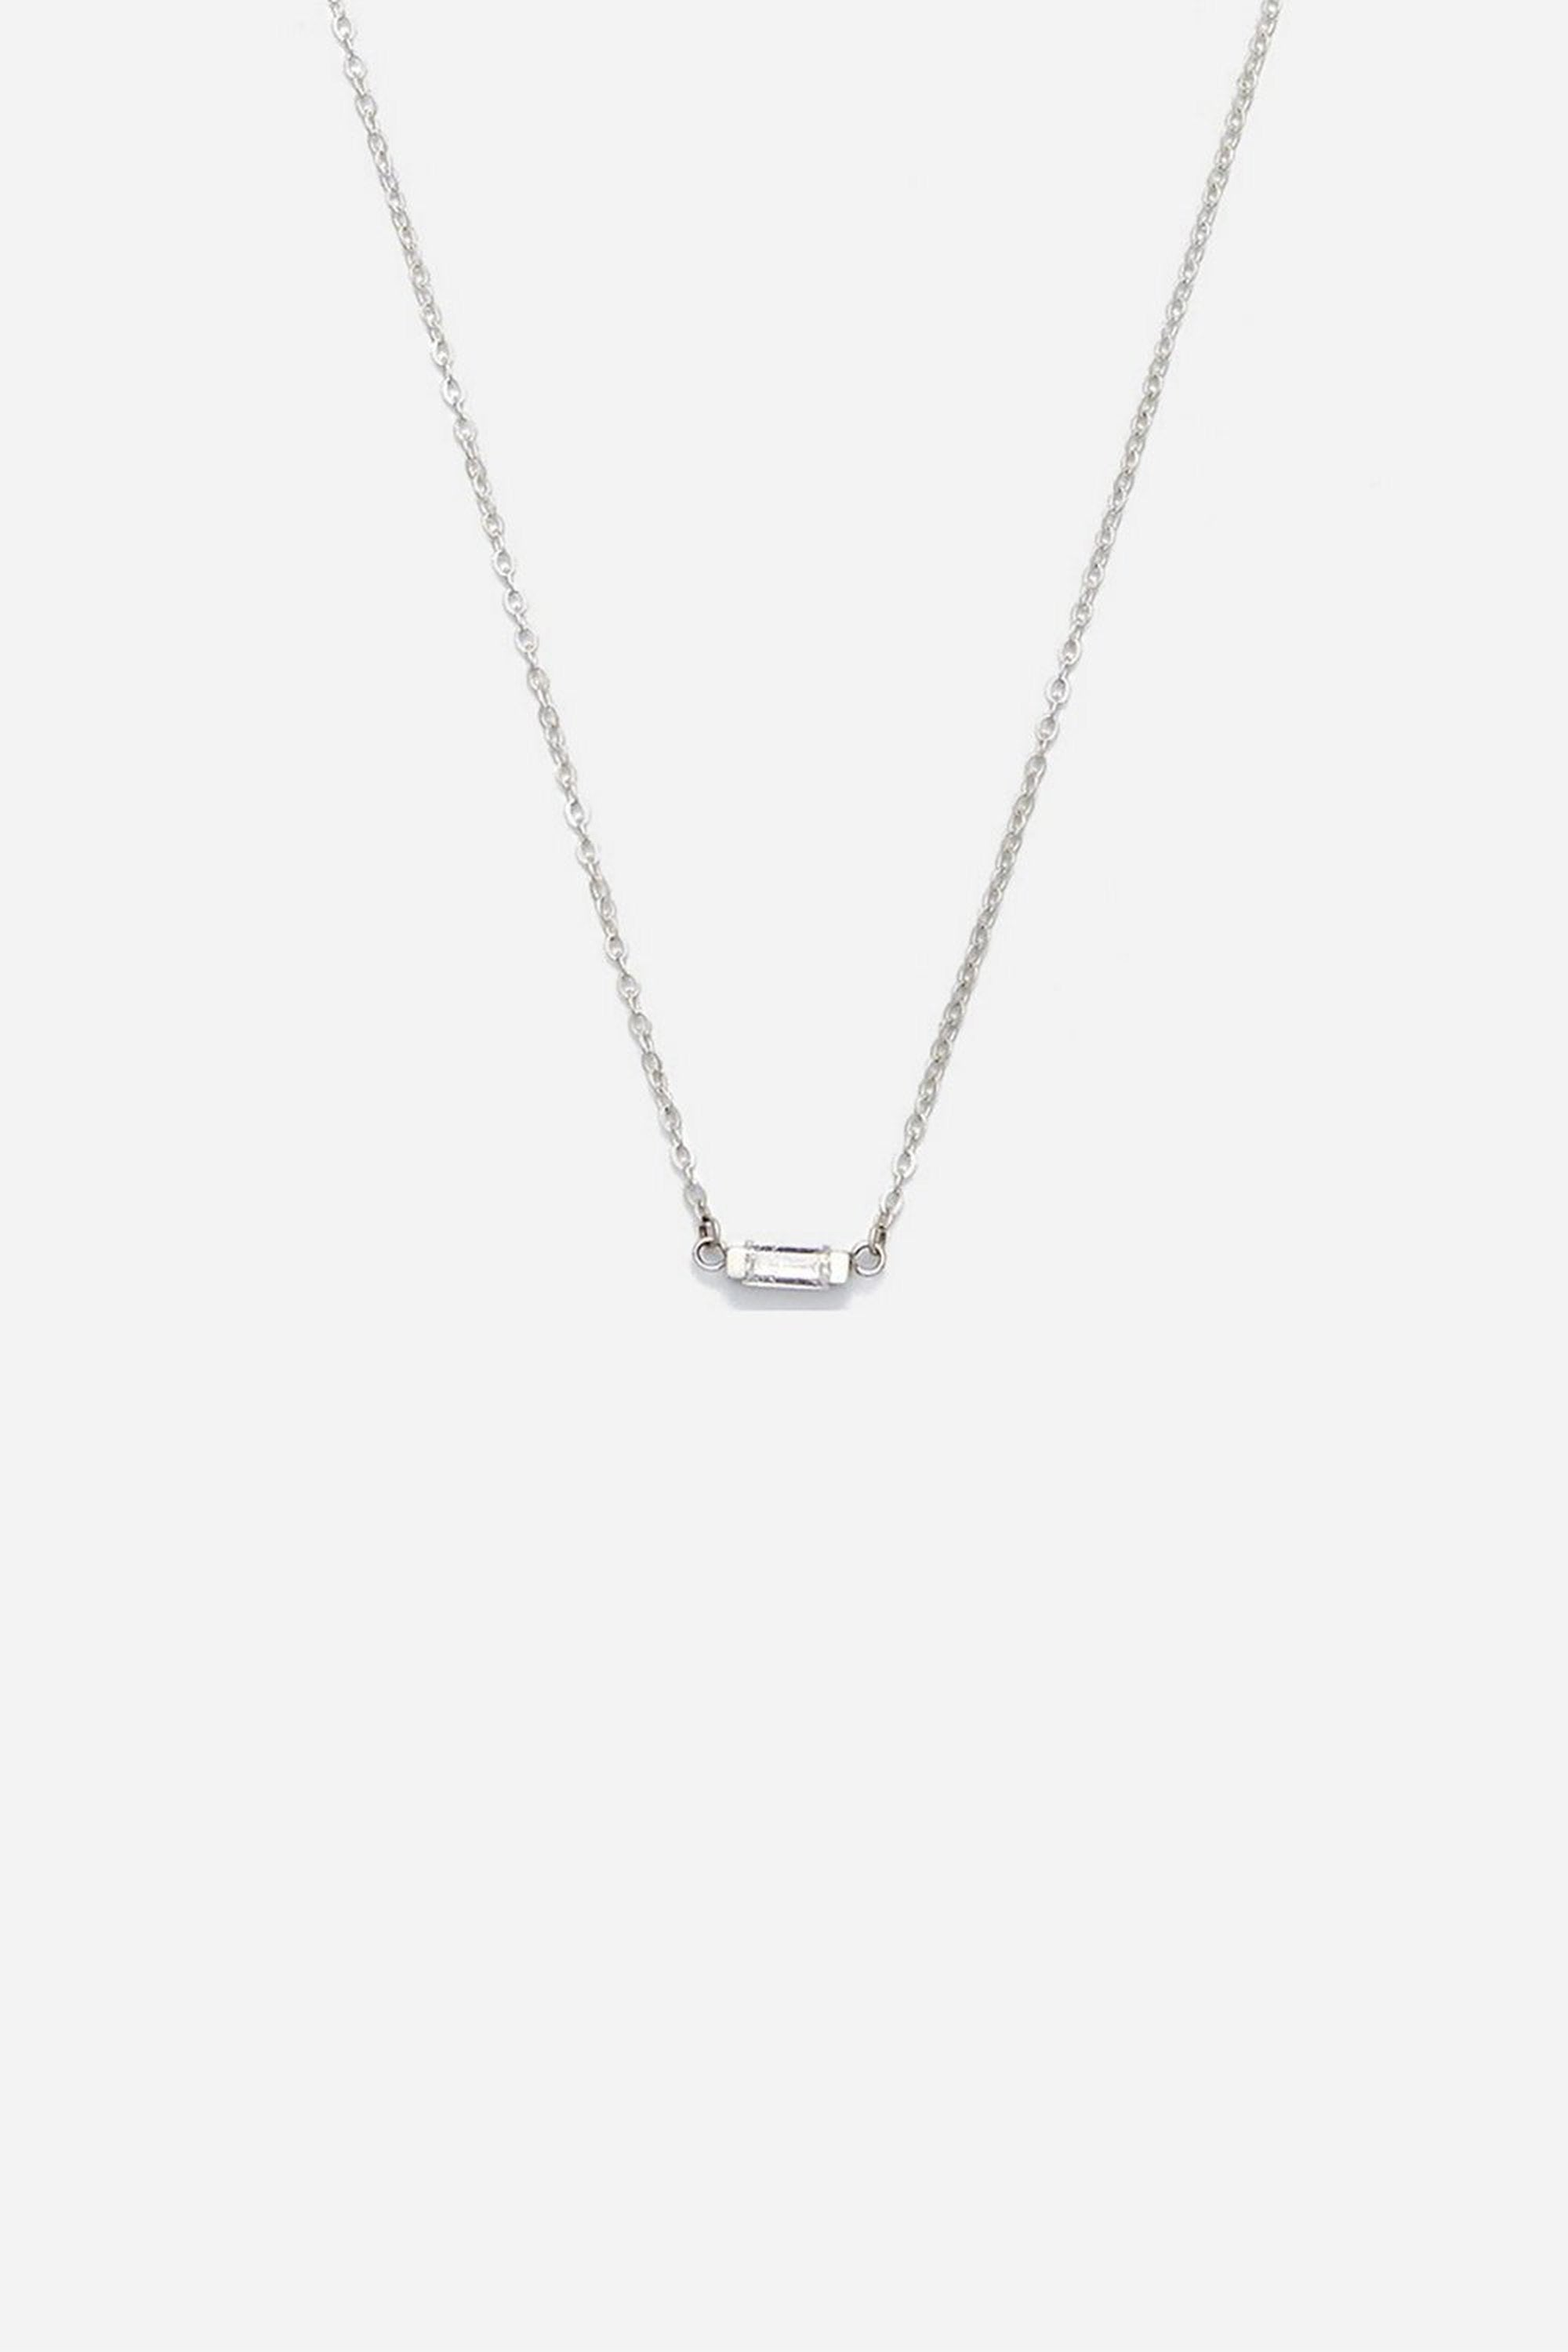 boho fullxfull jewelry listing arrow il dainty gift friend layering silver personalized modern sterling minimalist necklace for